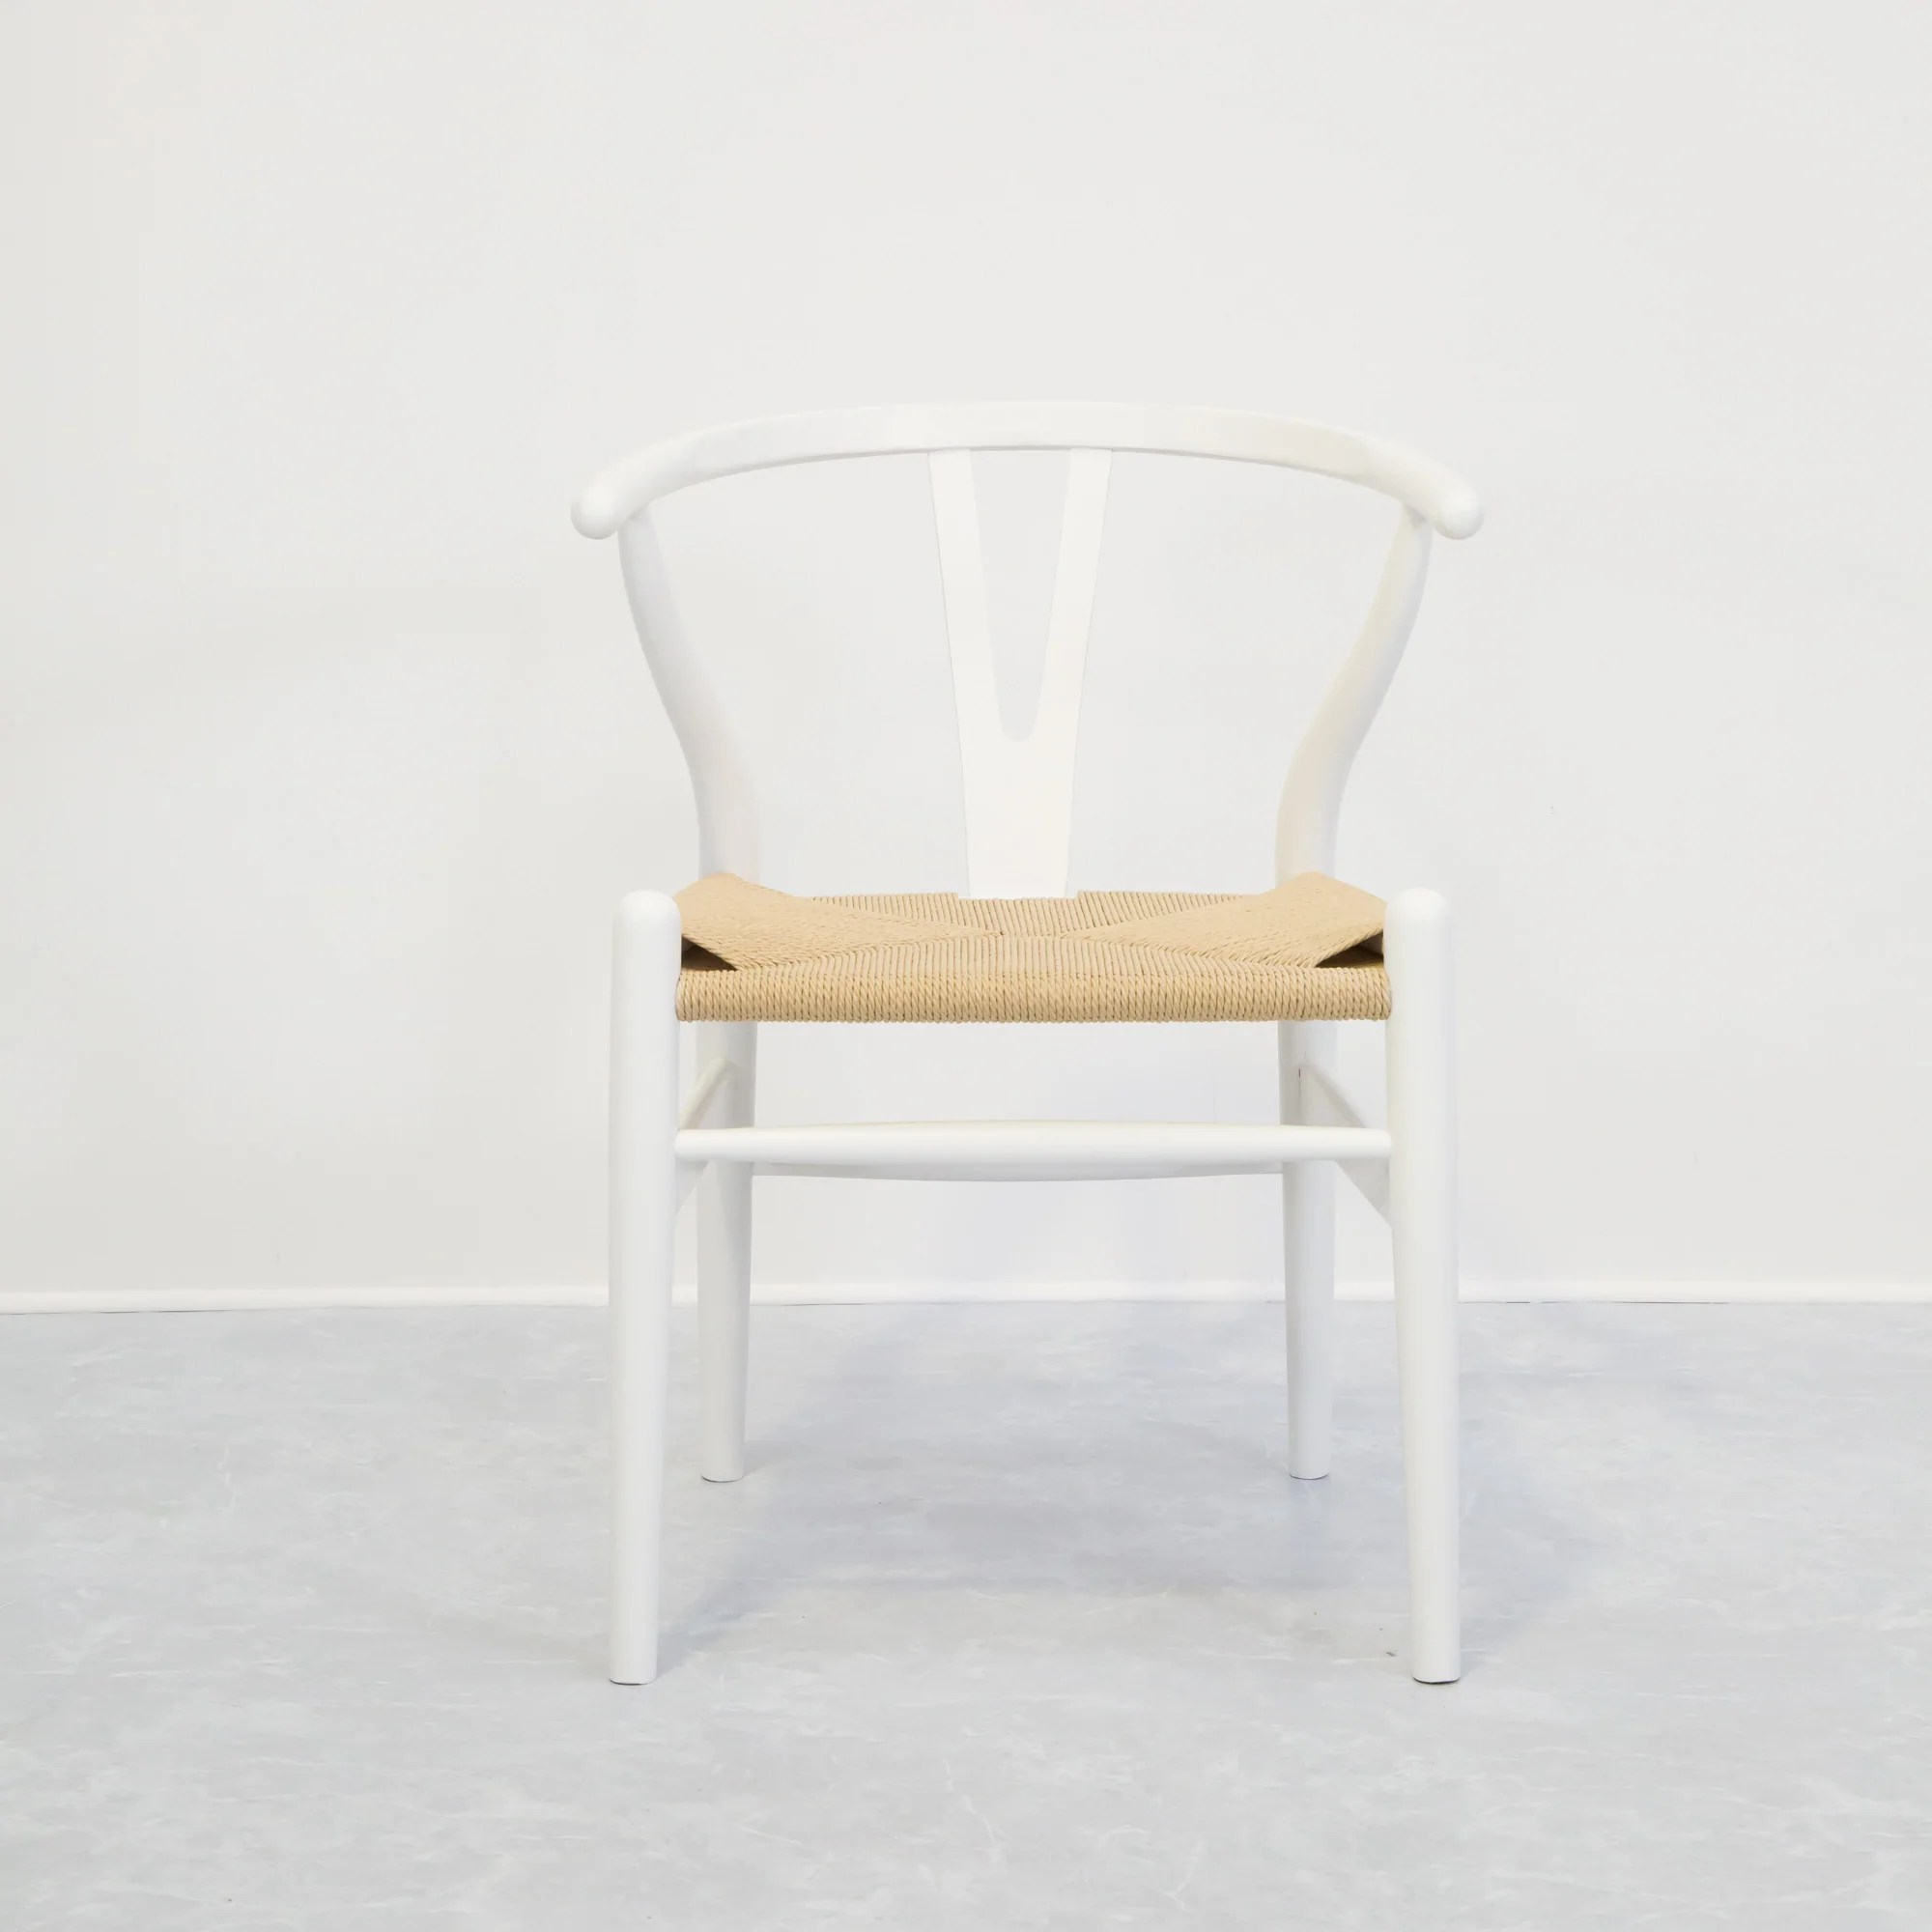 white wishbone chair replica lightweight folding chairs  eat furniture